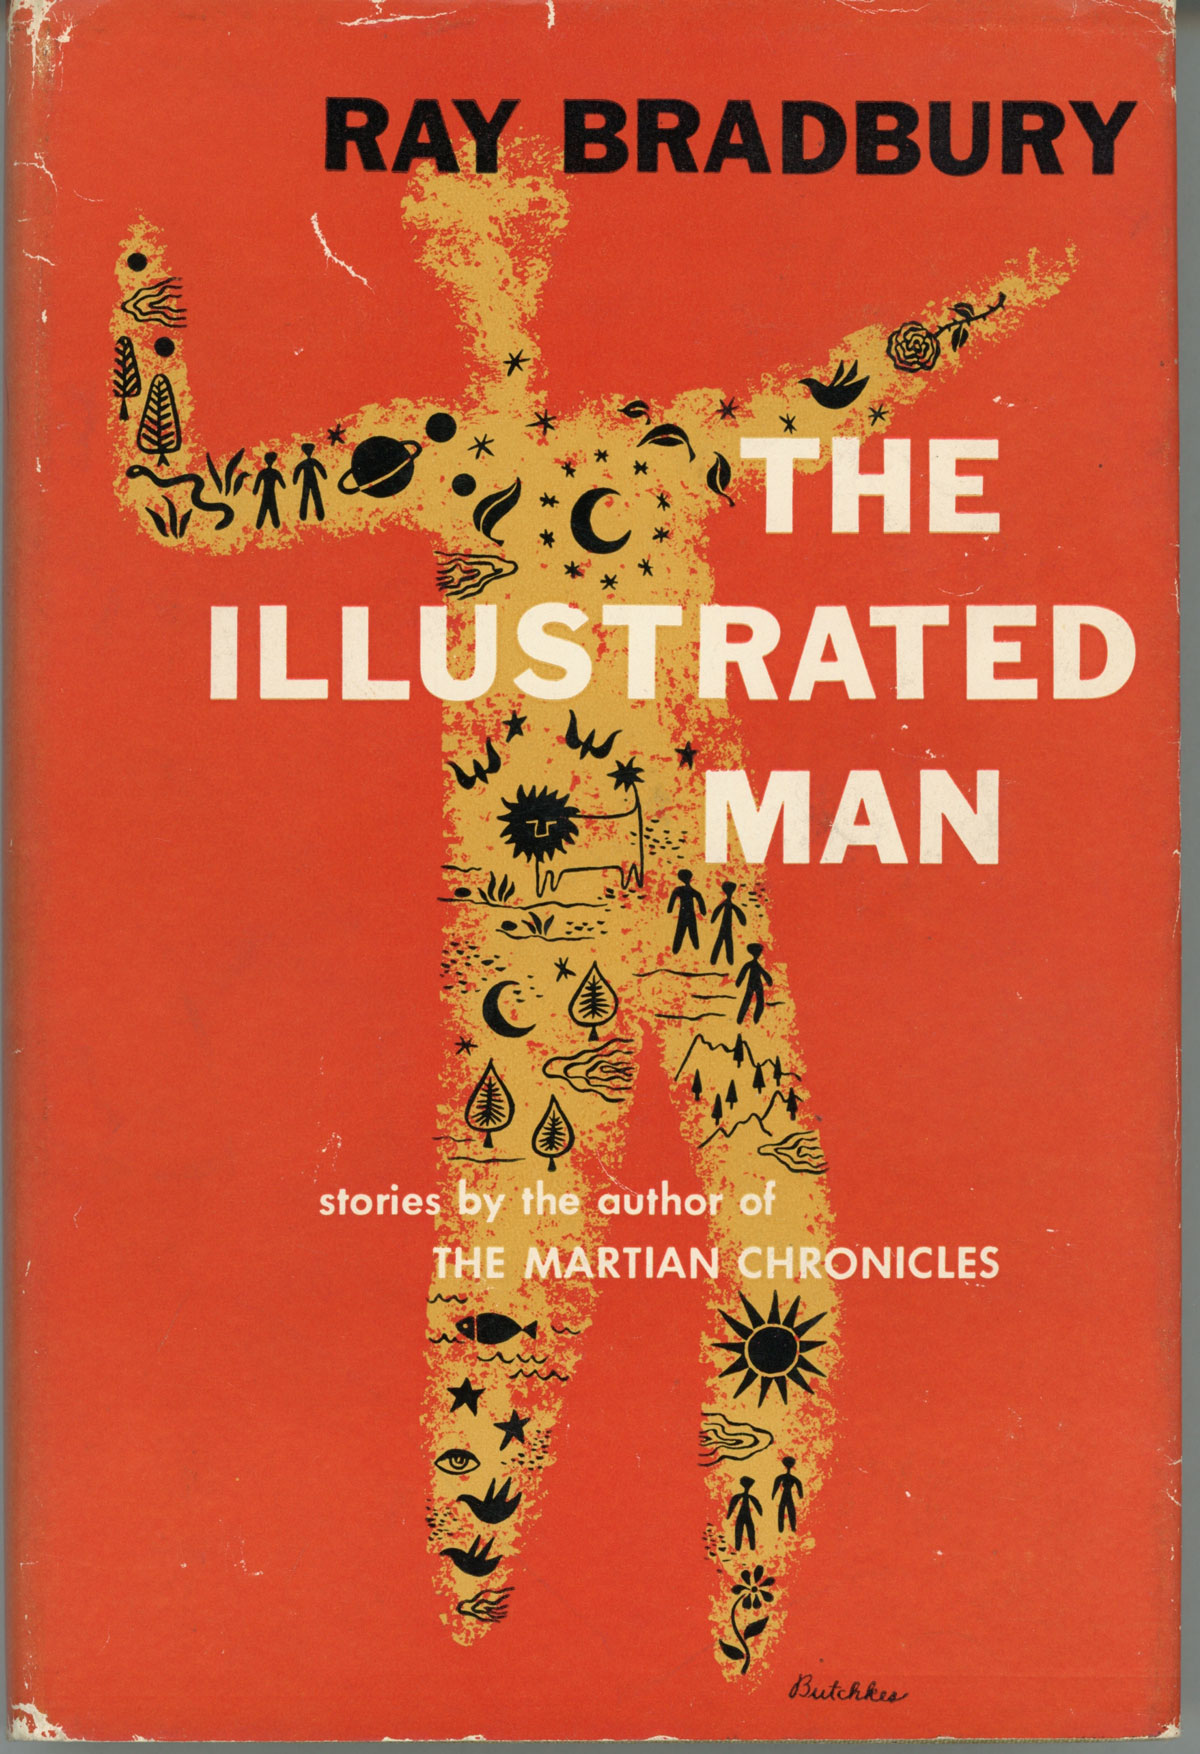 THE ILLUSTRATED MAN | Ray Bradbury | First edition